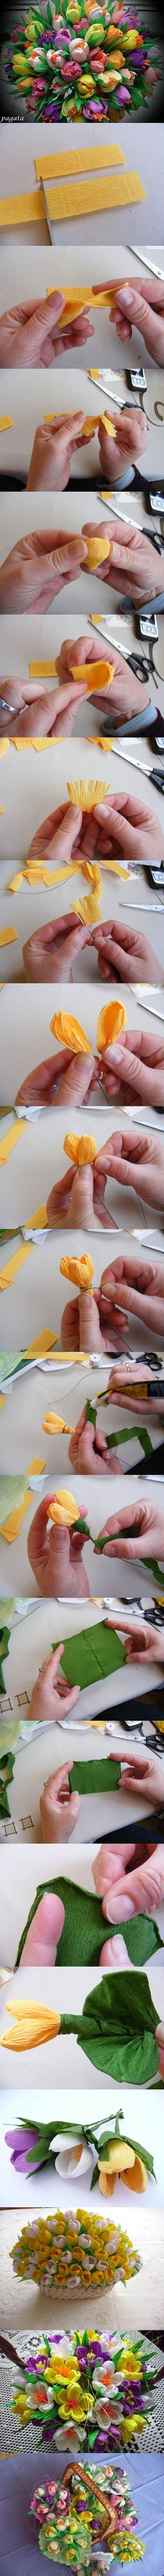 DIY Bouquet of Crepe Paper Crocuses http://www.icreativeideas.com/diy-beautiful-bouquet-of-crepe-paper-crocuses/